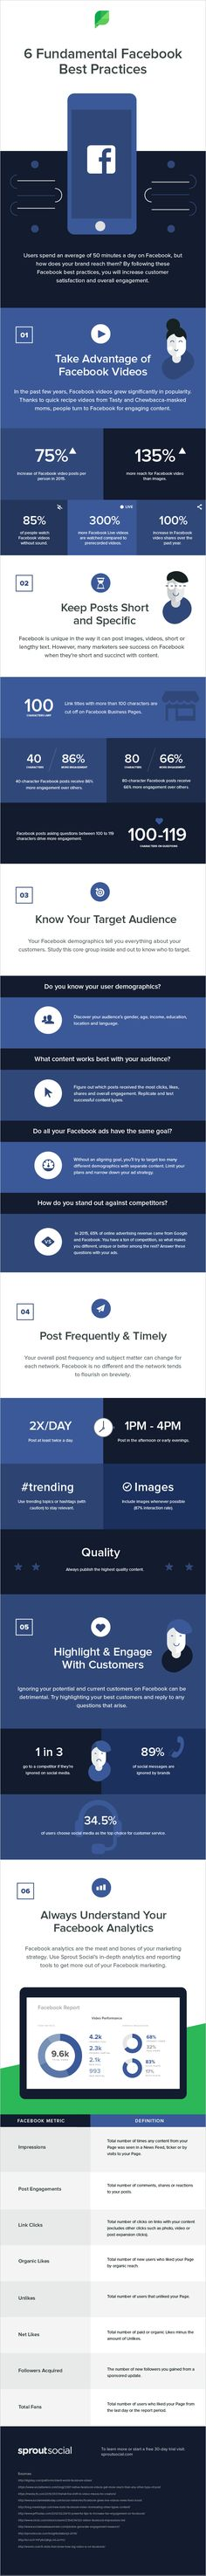 A beginners guide to marketing on Facebook: 6 fundamental best practices